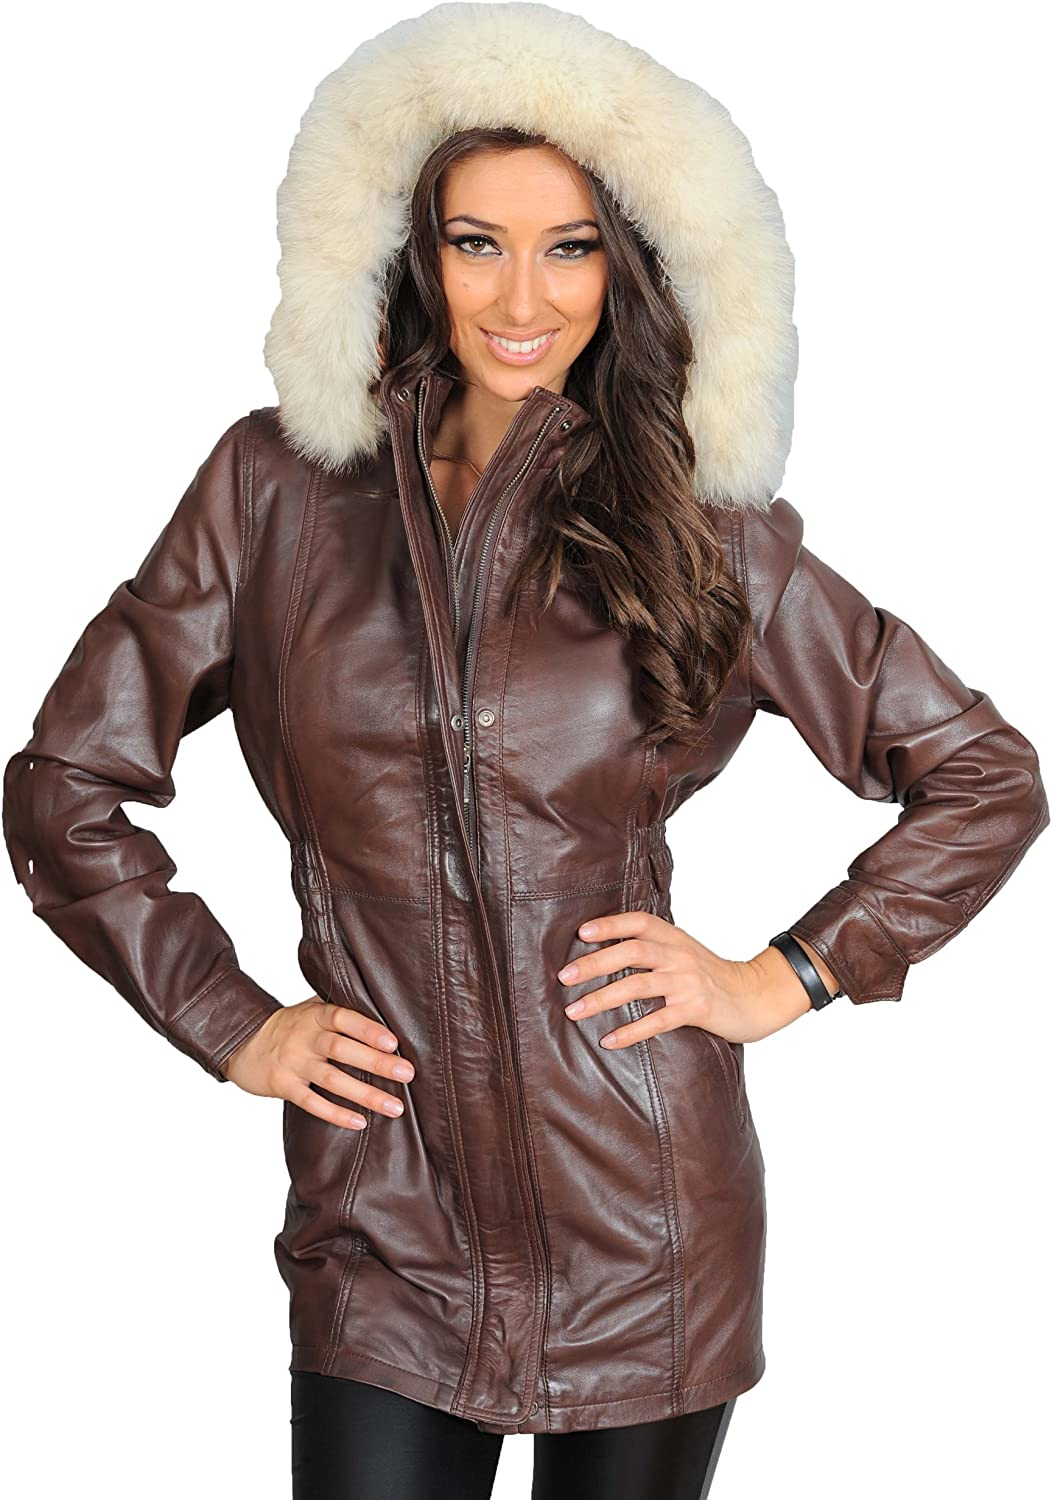 A1 FASHION GOODS Ladies Duffle Leather Coat Hooded Fitted 3 4 Long Parka Jacket Nina